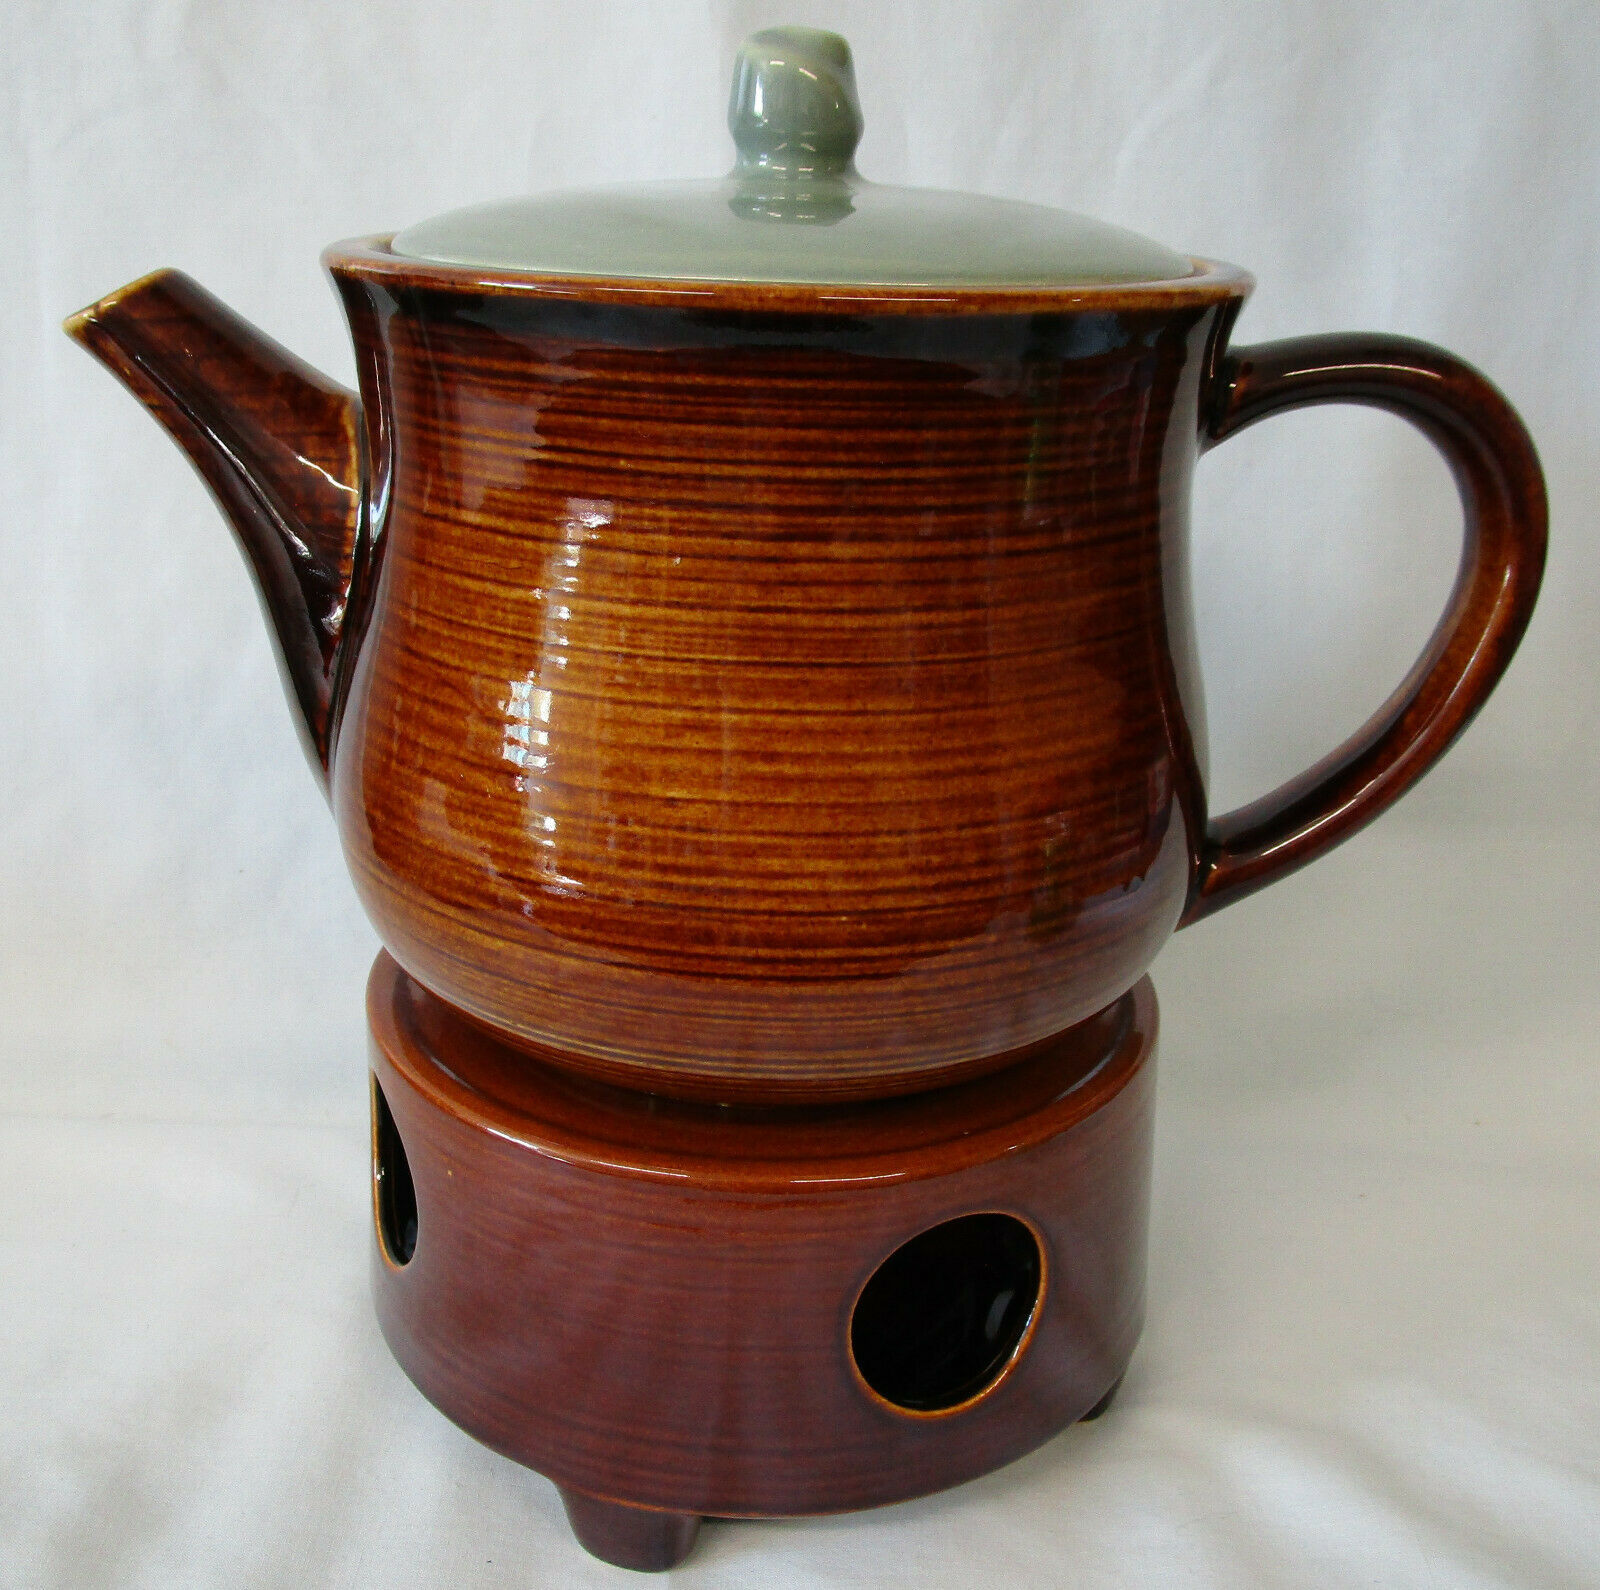 Red Wing Village Green Tea Pot with Warmer - $119.68